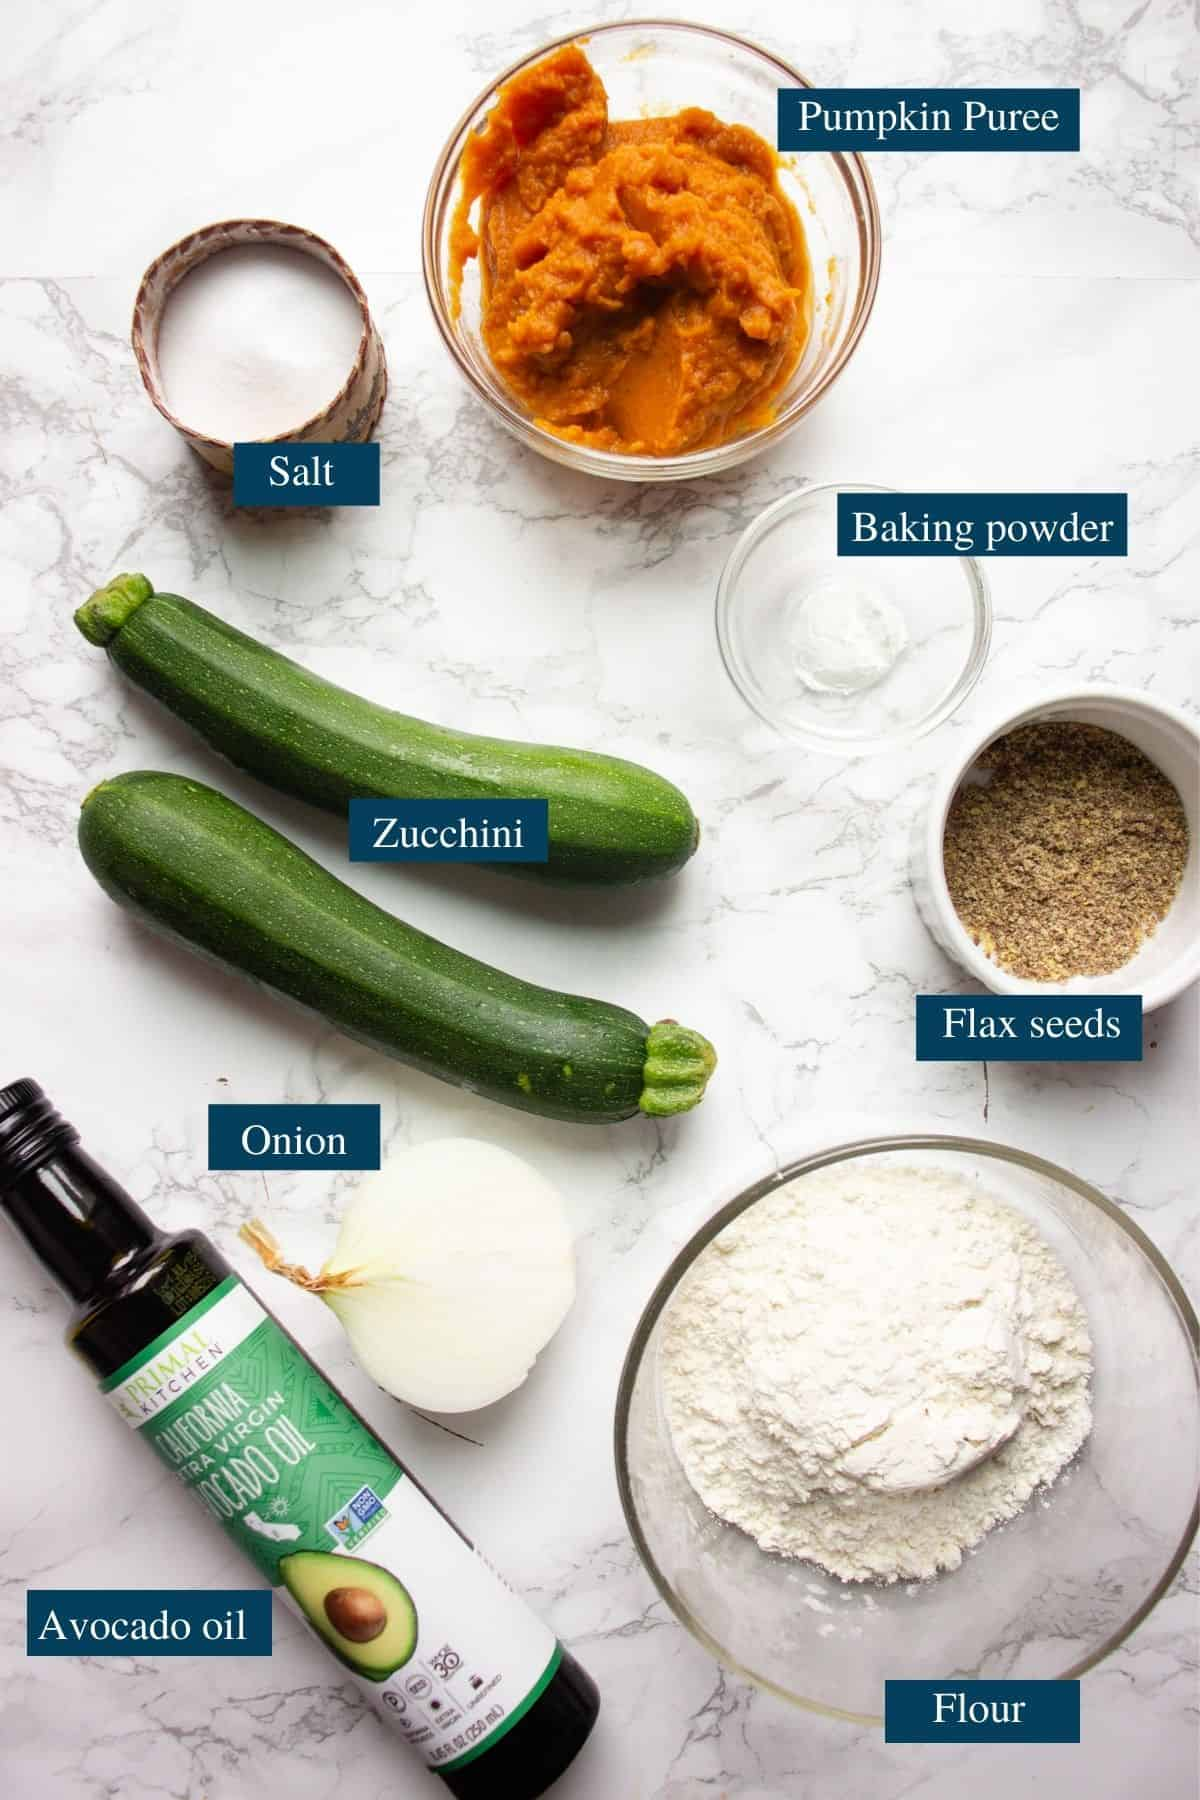 Photo of the ingredients for Pumpkin and zucchini fritters